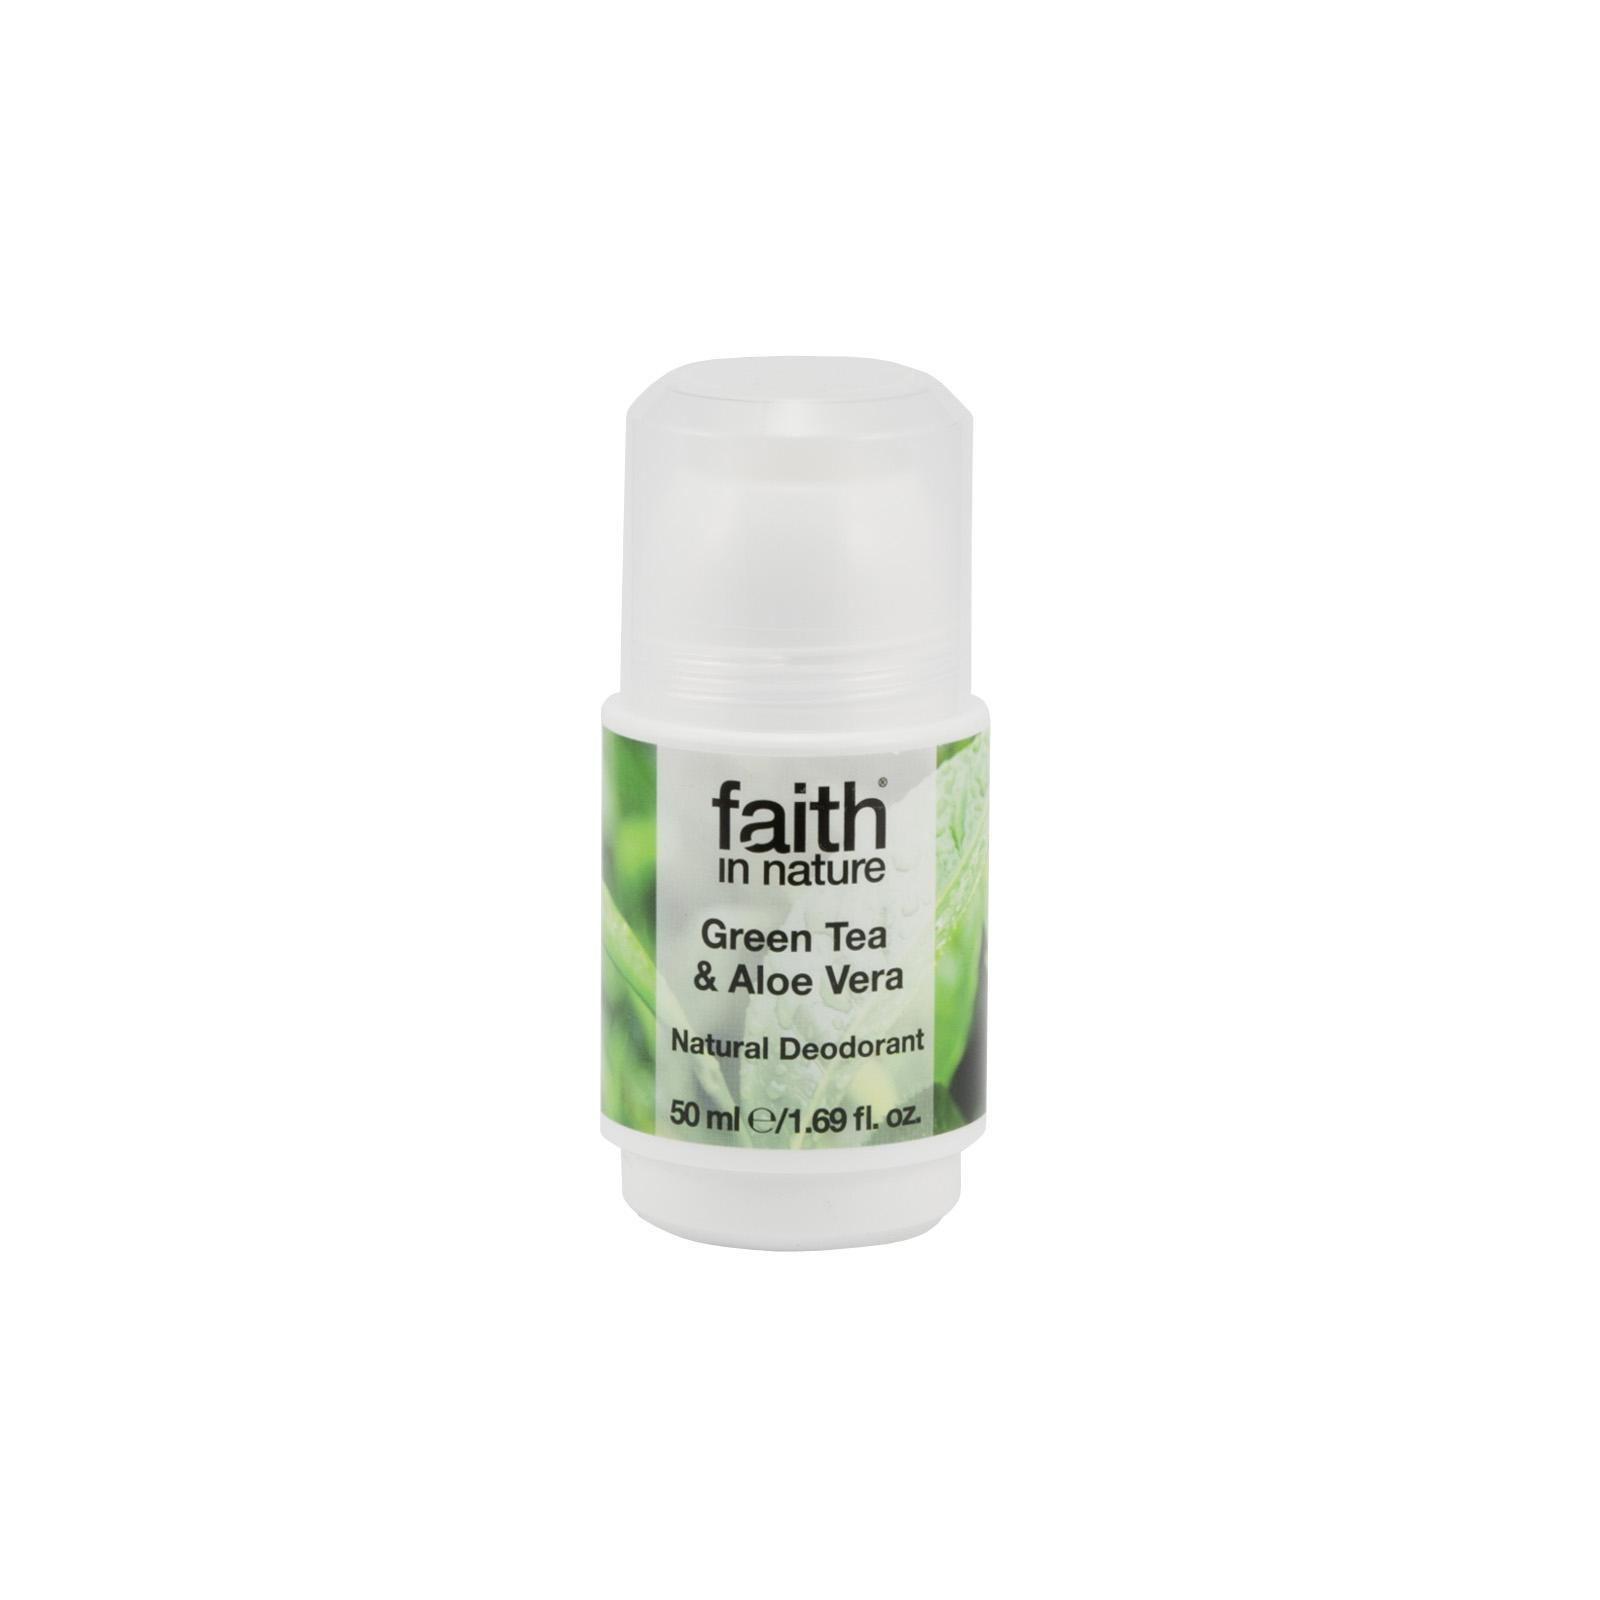 Faith in Nature Deo kulička green tea 50 ml